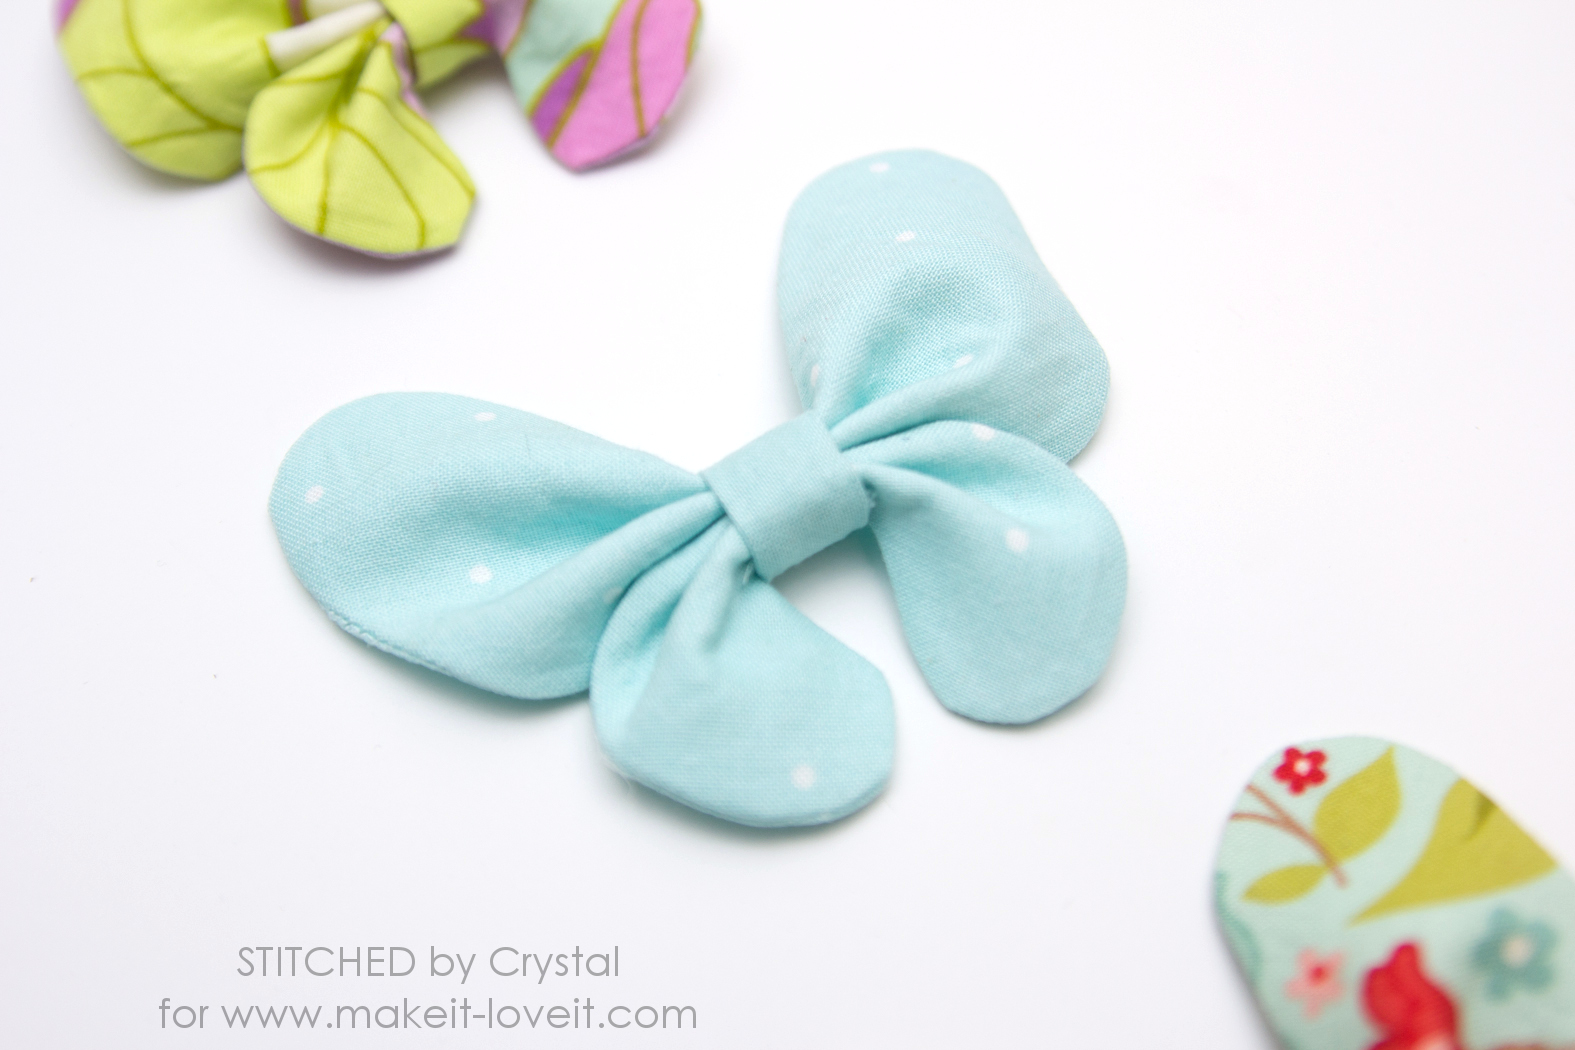 Hair bow button accessories - Start By Printing Your Pattern And Cutting It Out Then Use The Pattern To Cut One Top Wing Piece And One Bottom Wing Piece From Your Interfacing